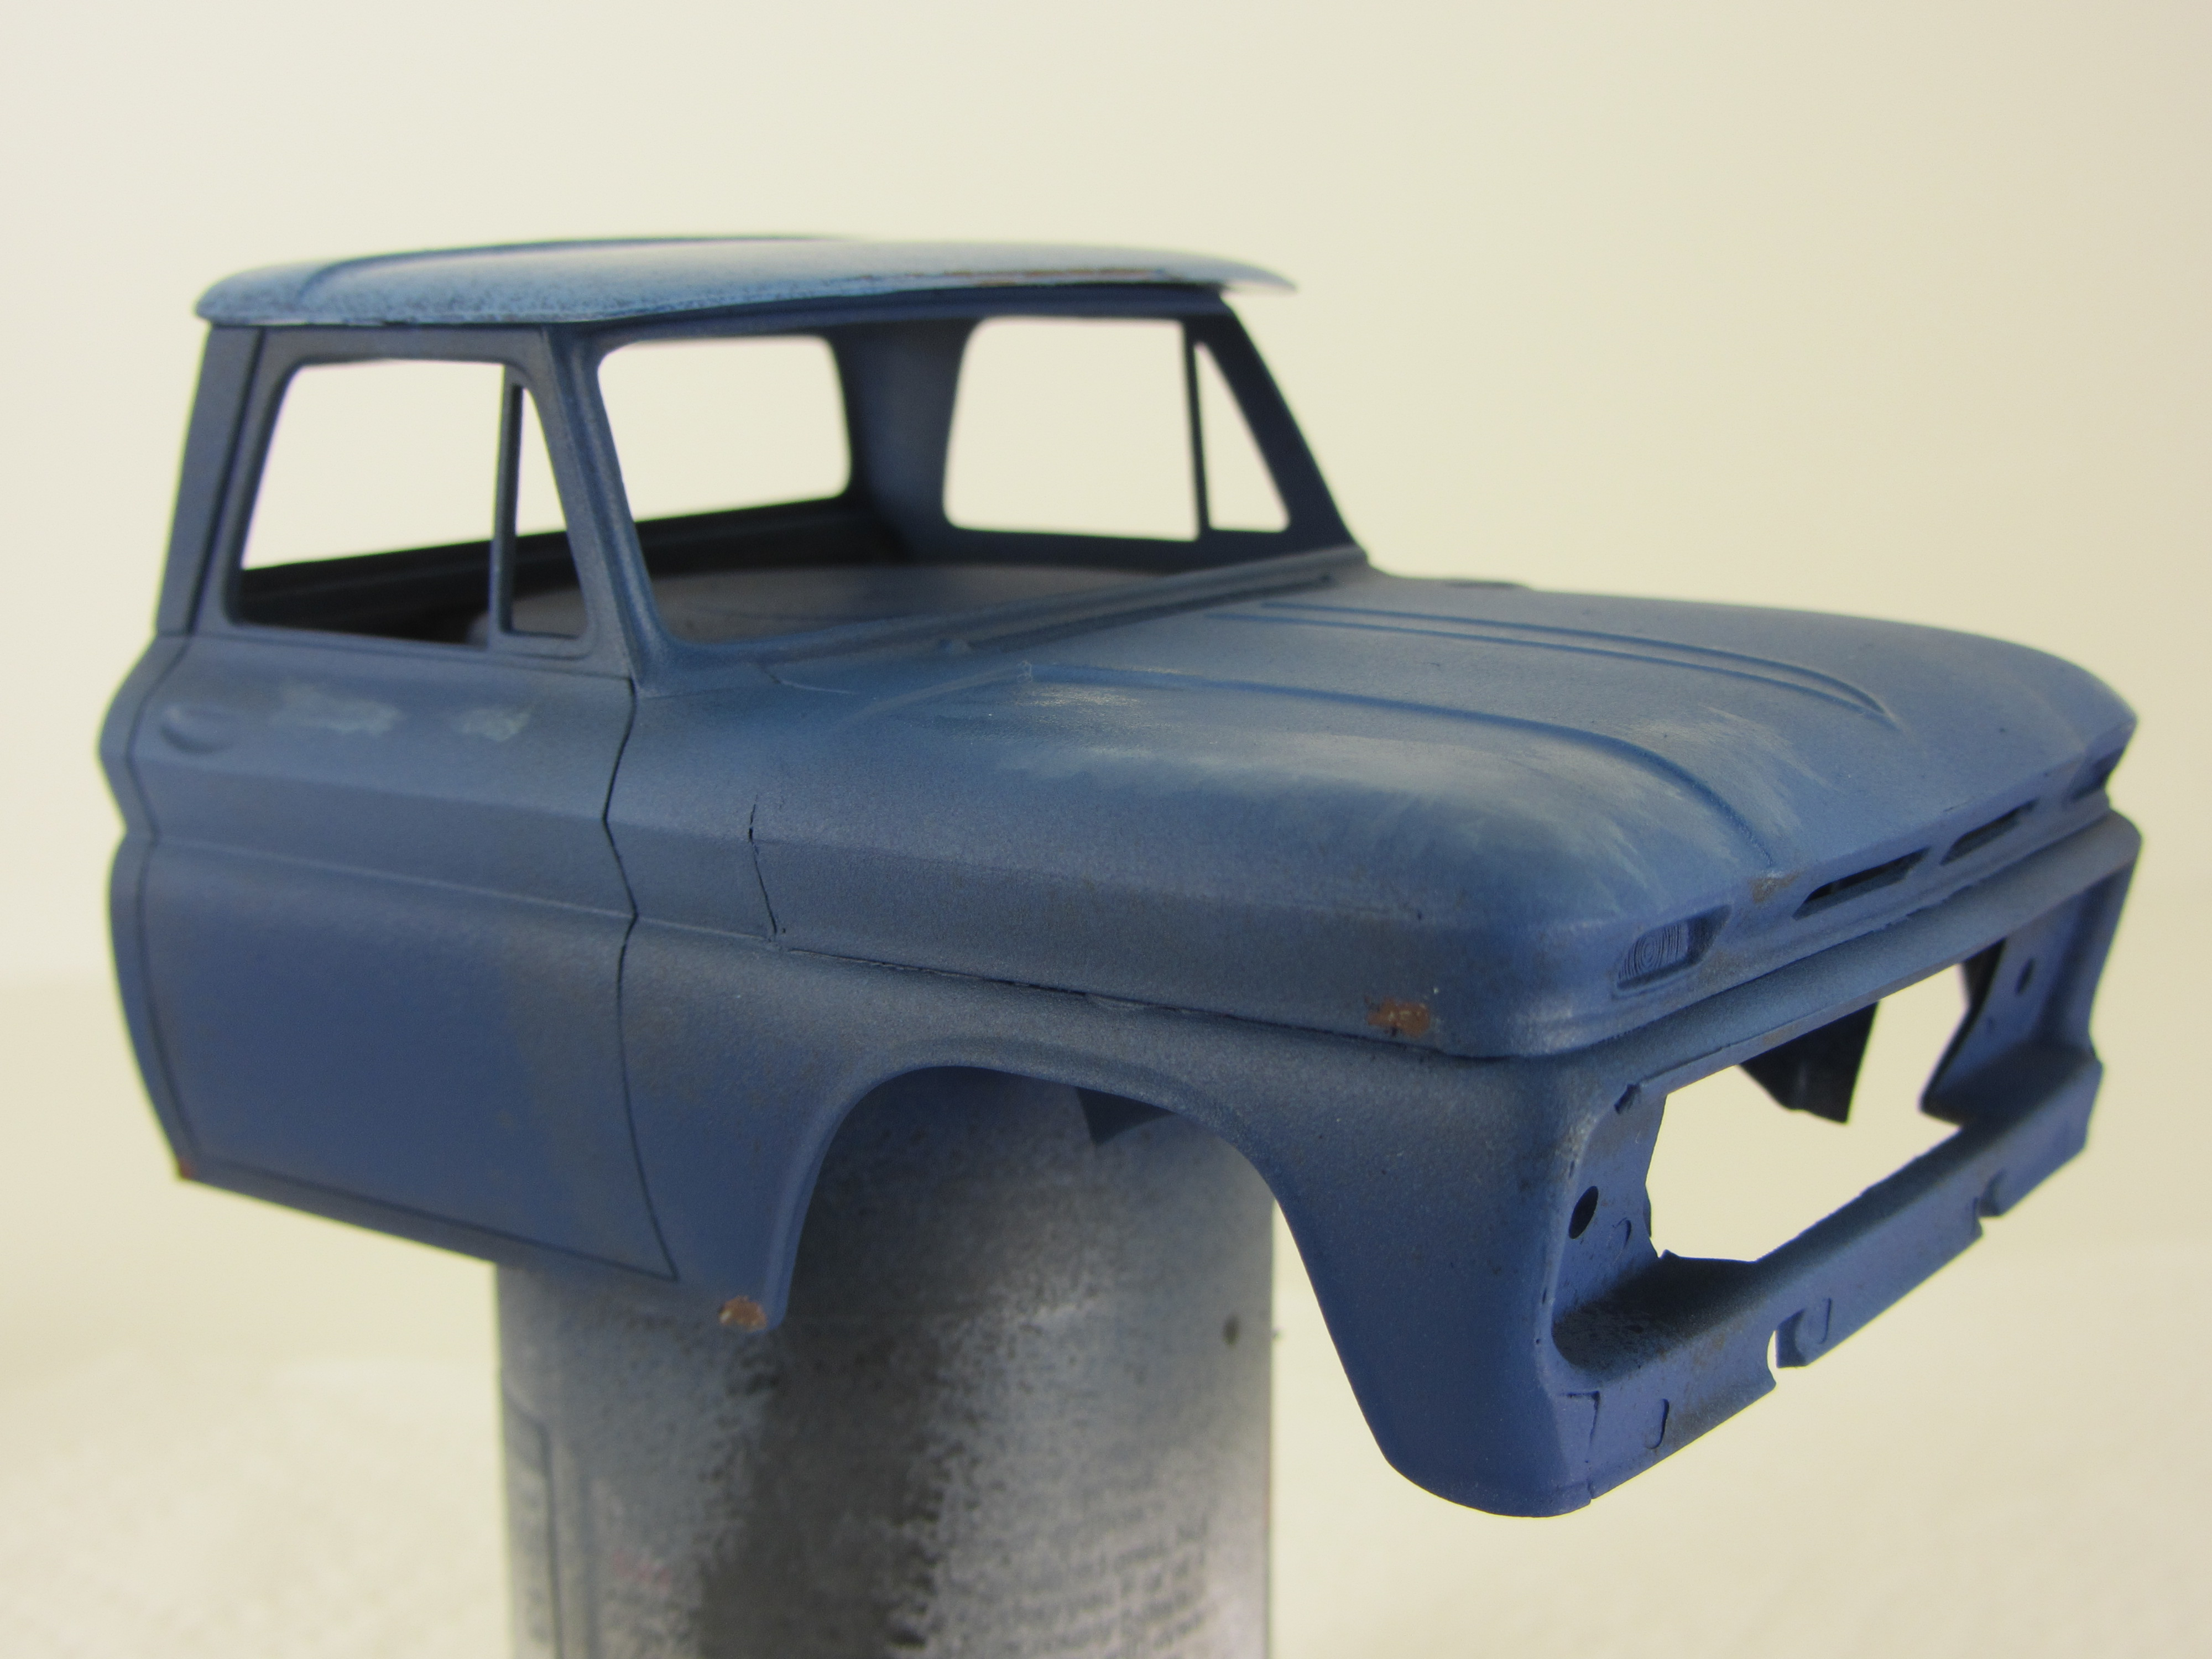 1/25 scale Chevy pickup cab from Revell